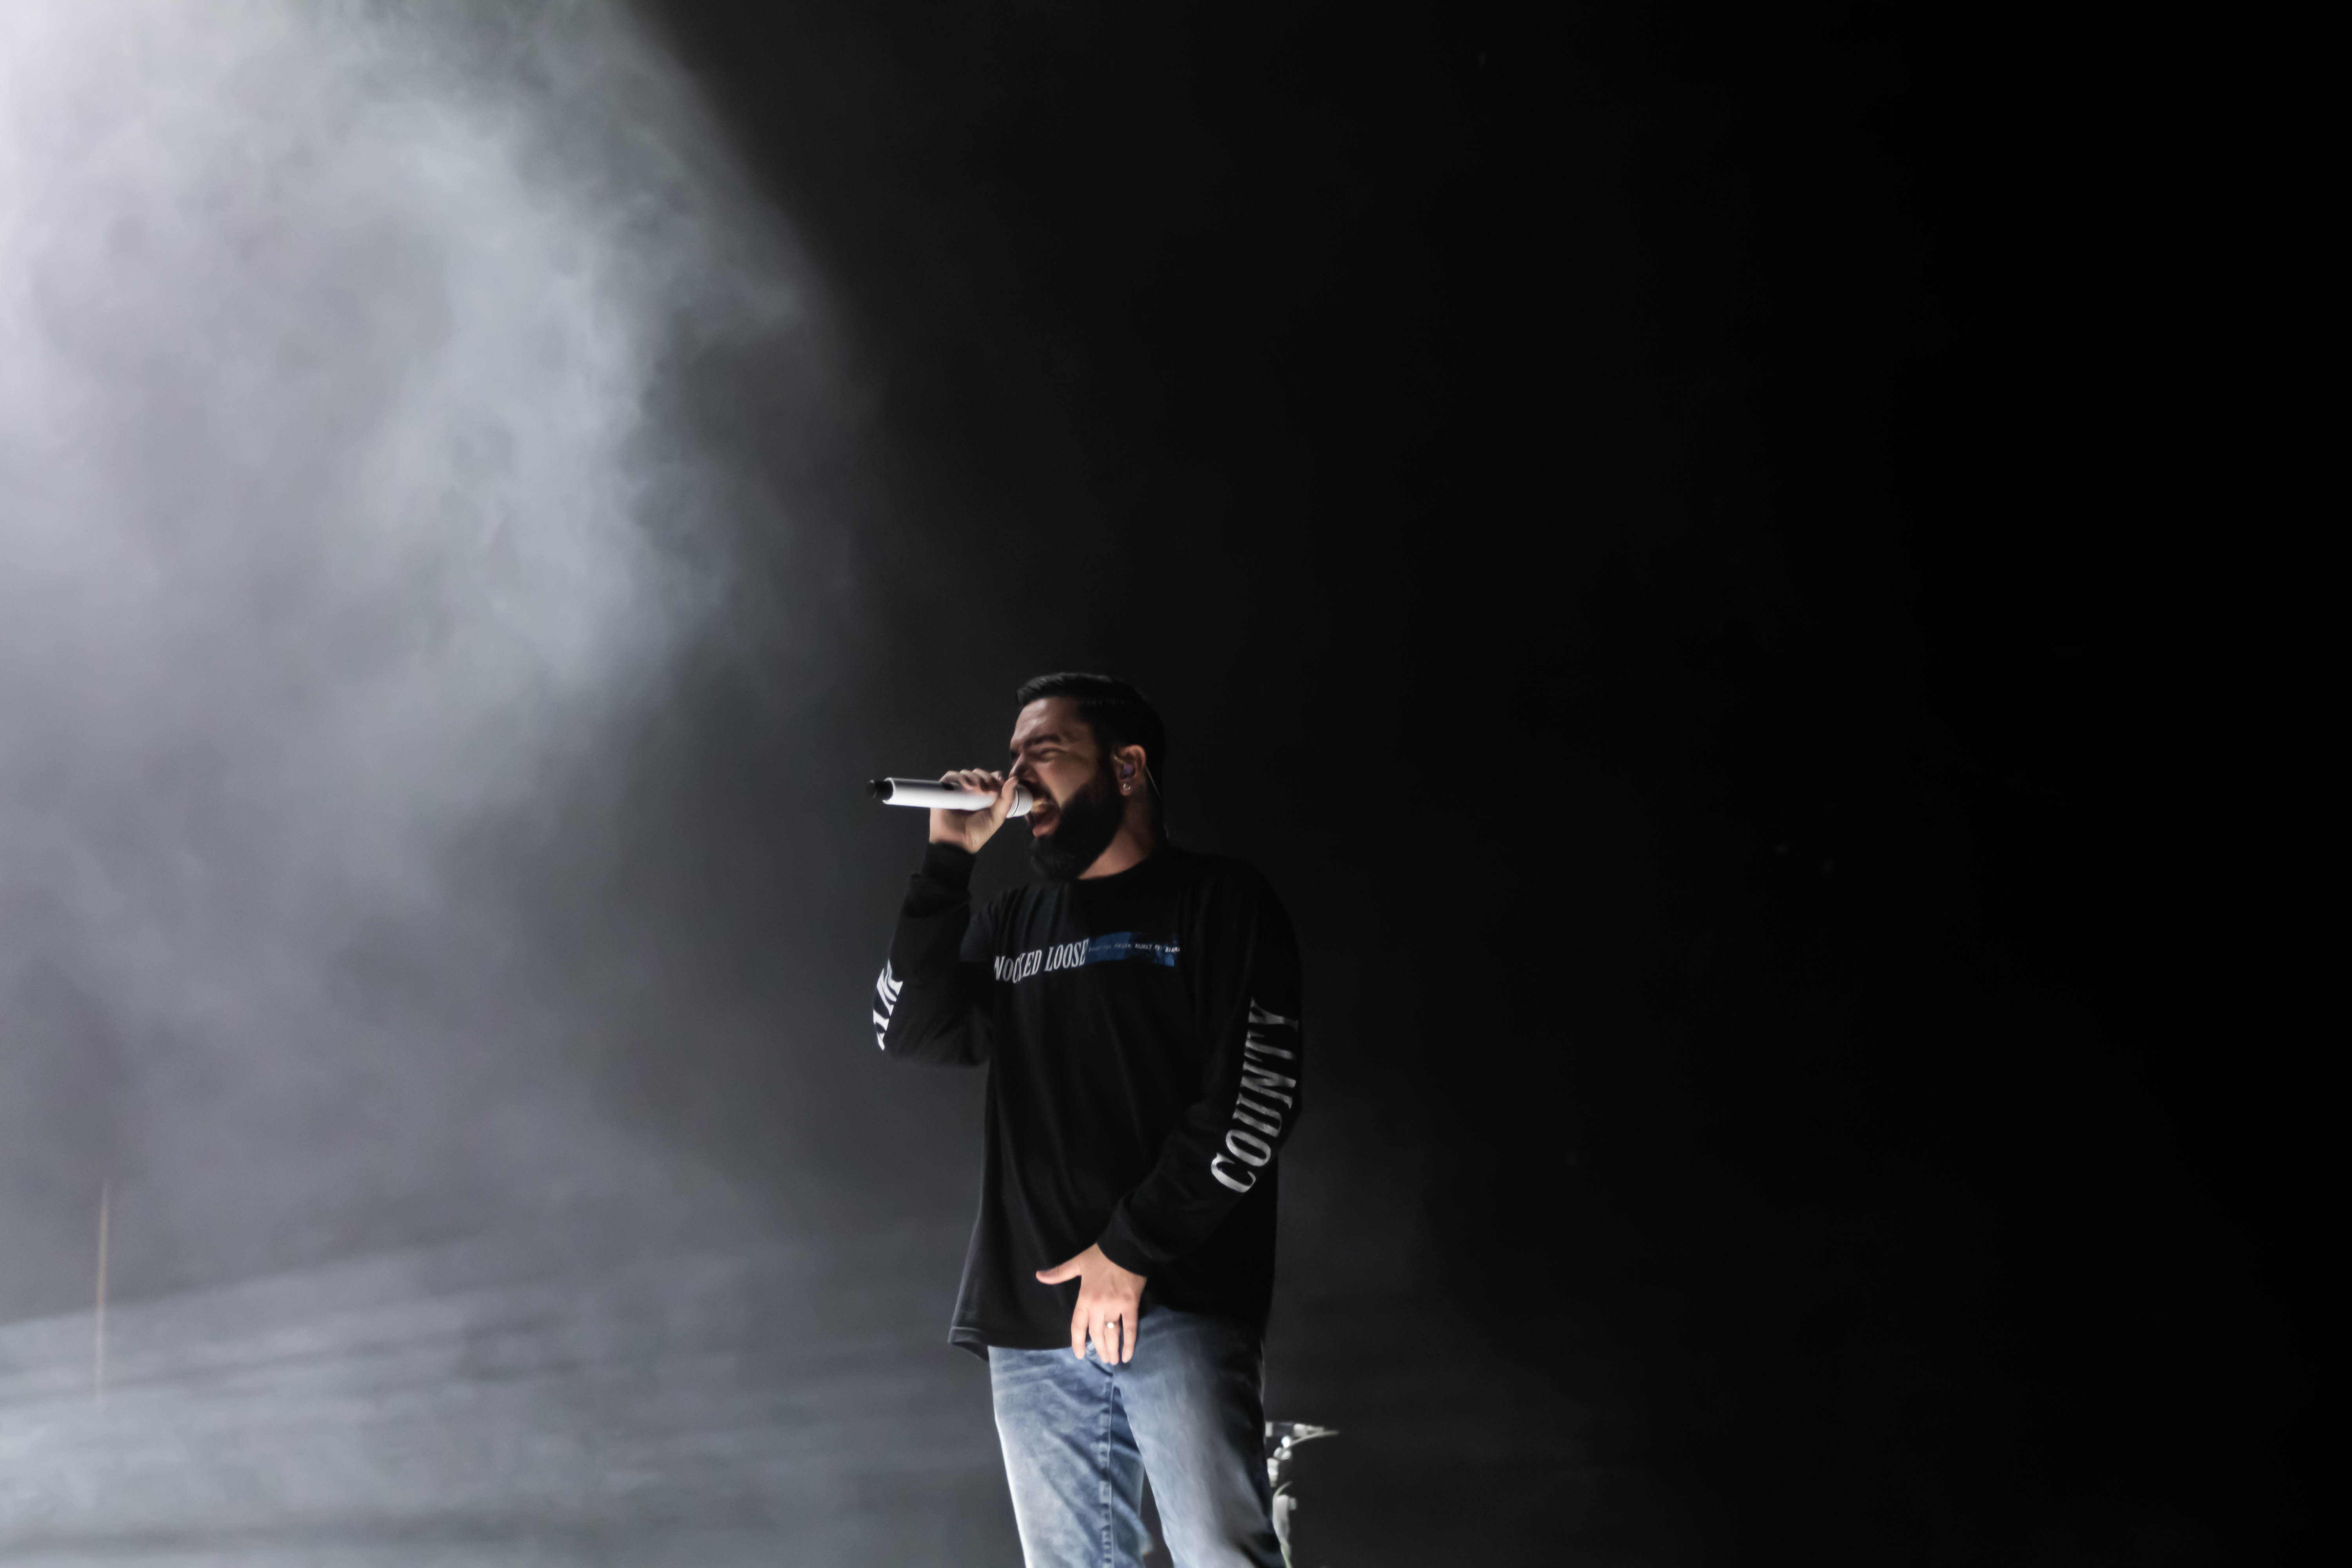 singer Jeremy McKinnon singing into a microphone